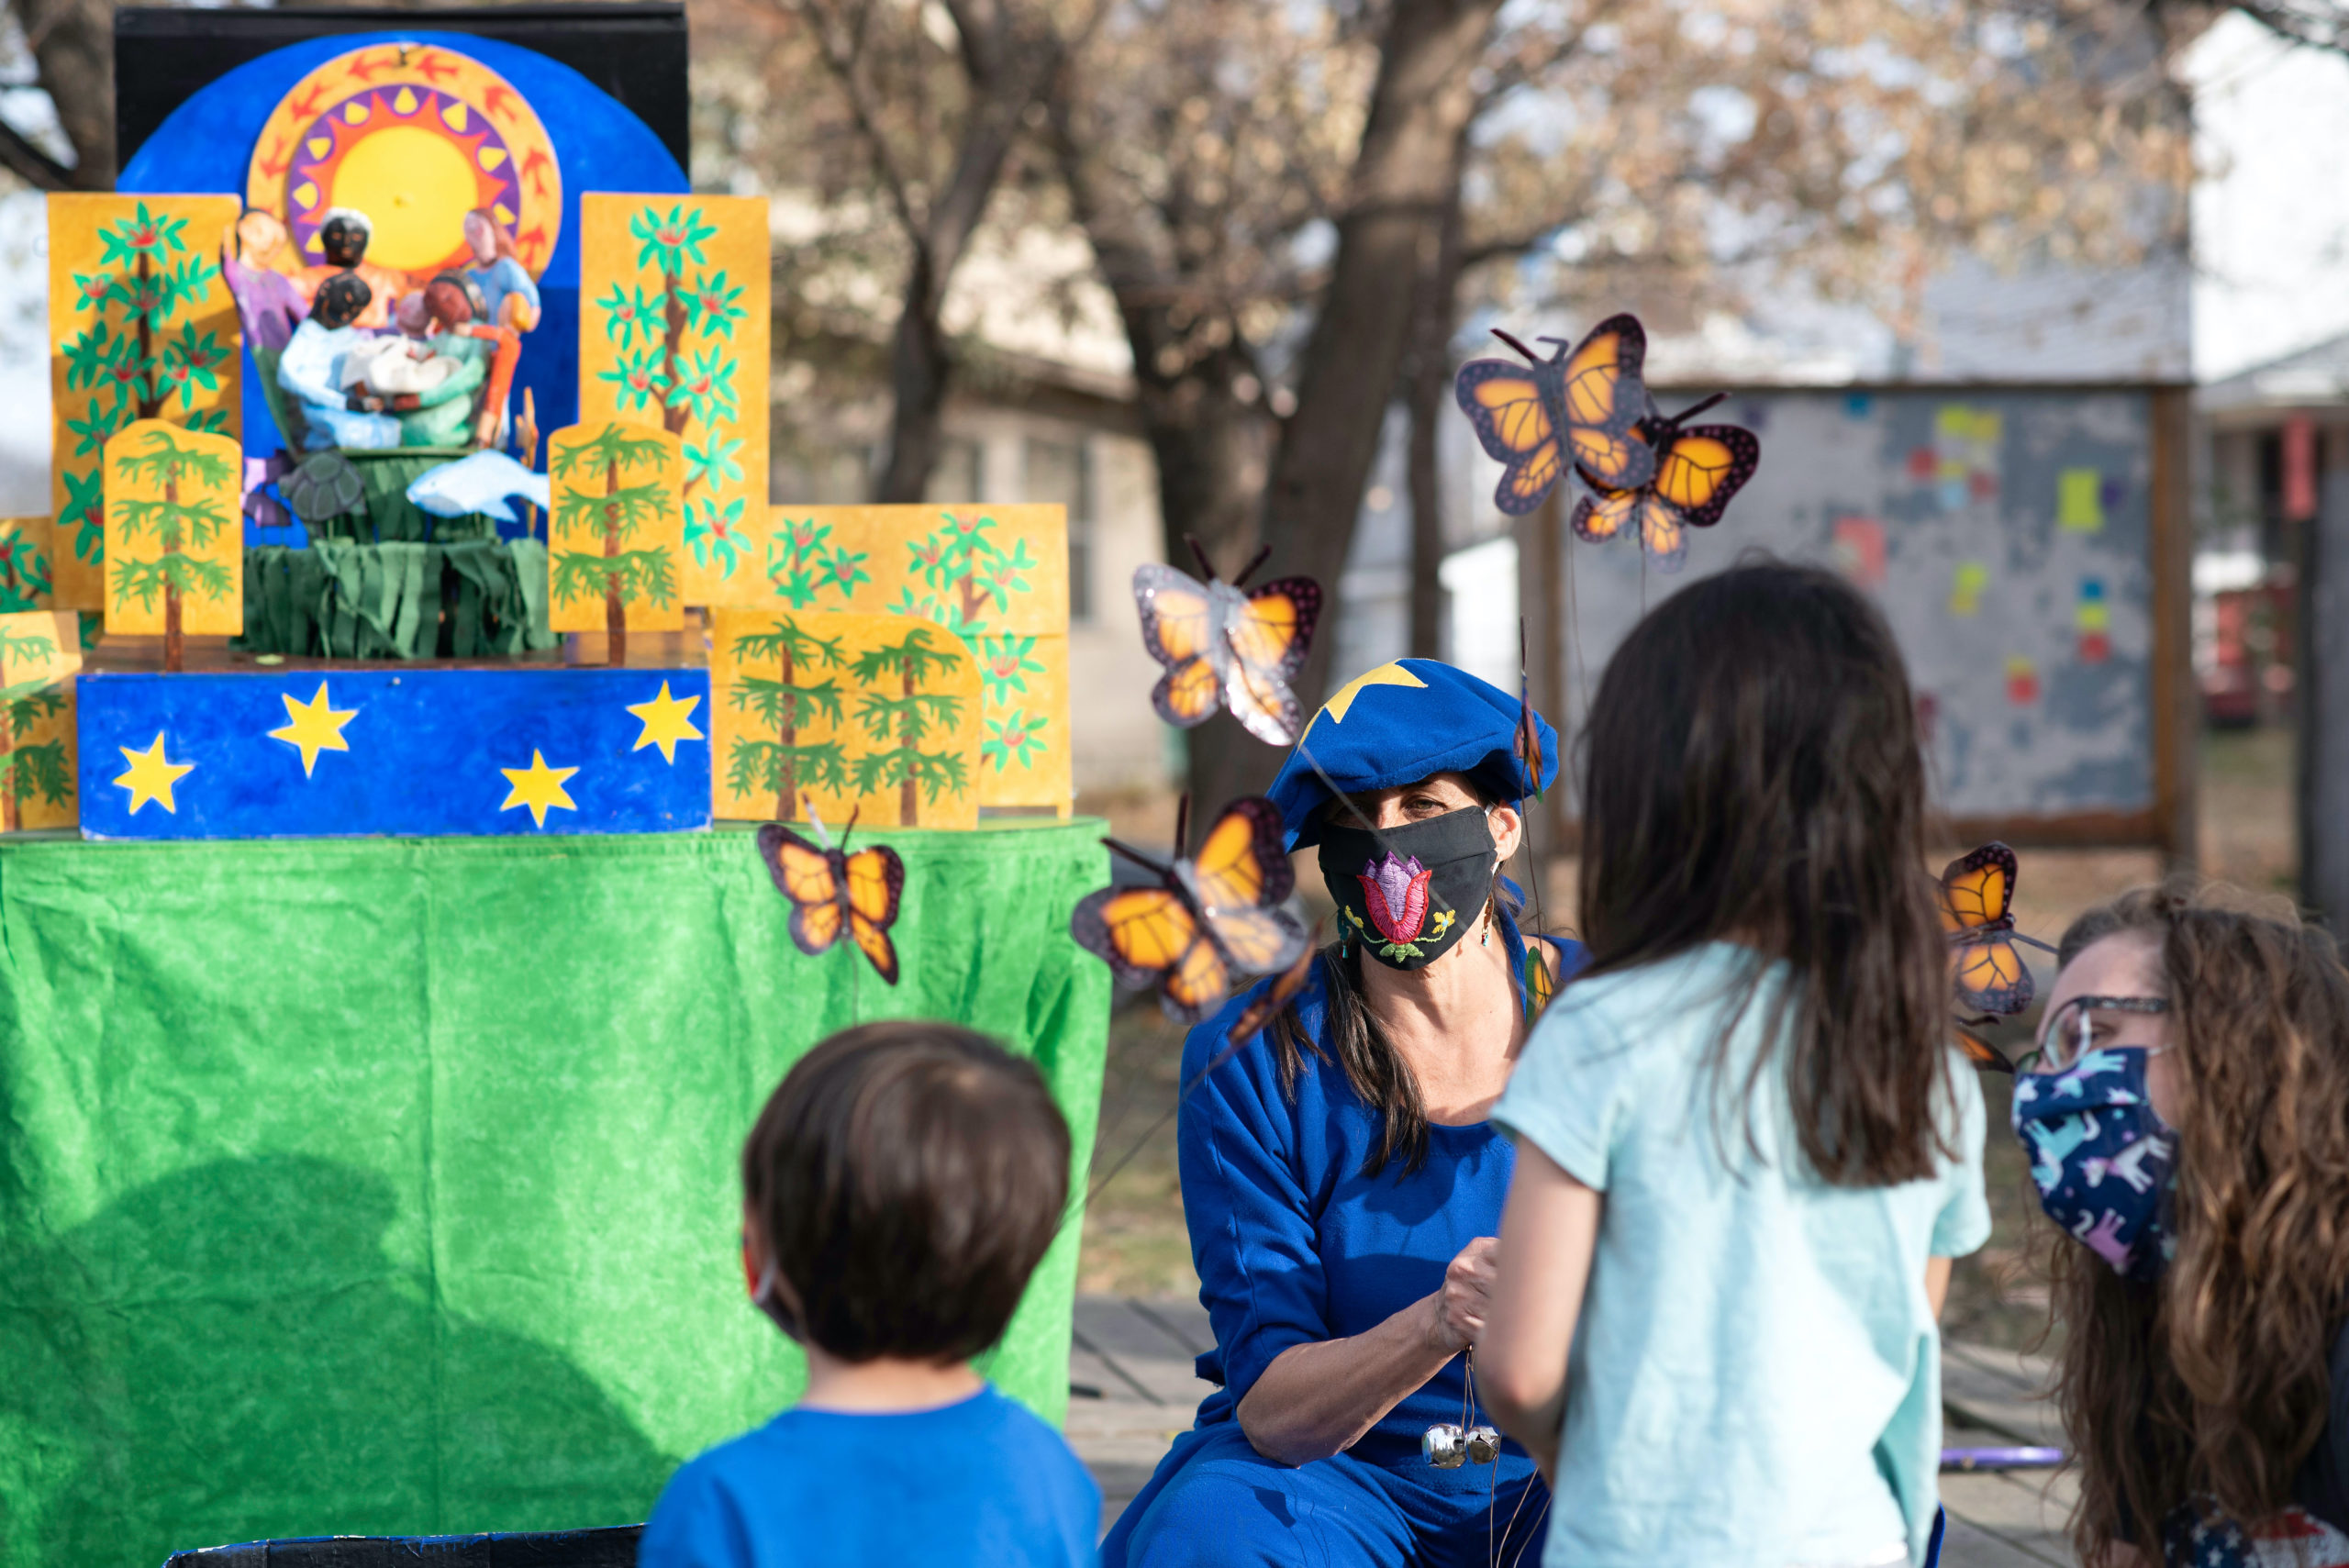 A performer in a blue mask with monarch butterfly puppets in front of a colorful set